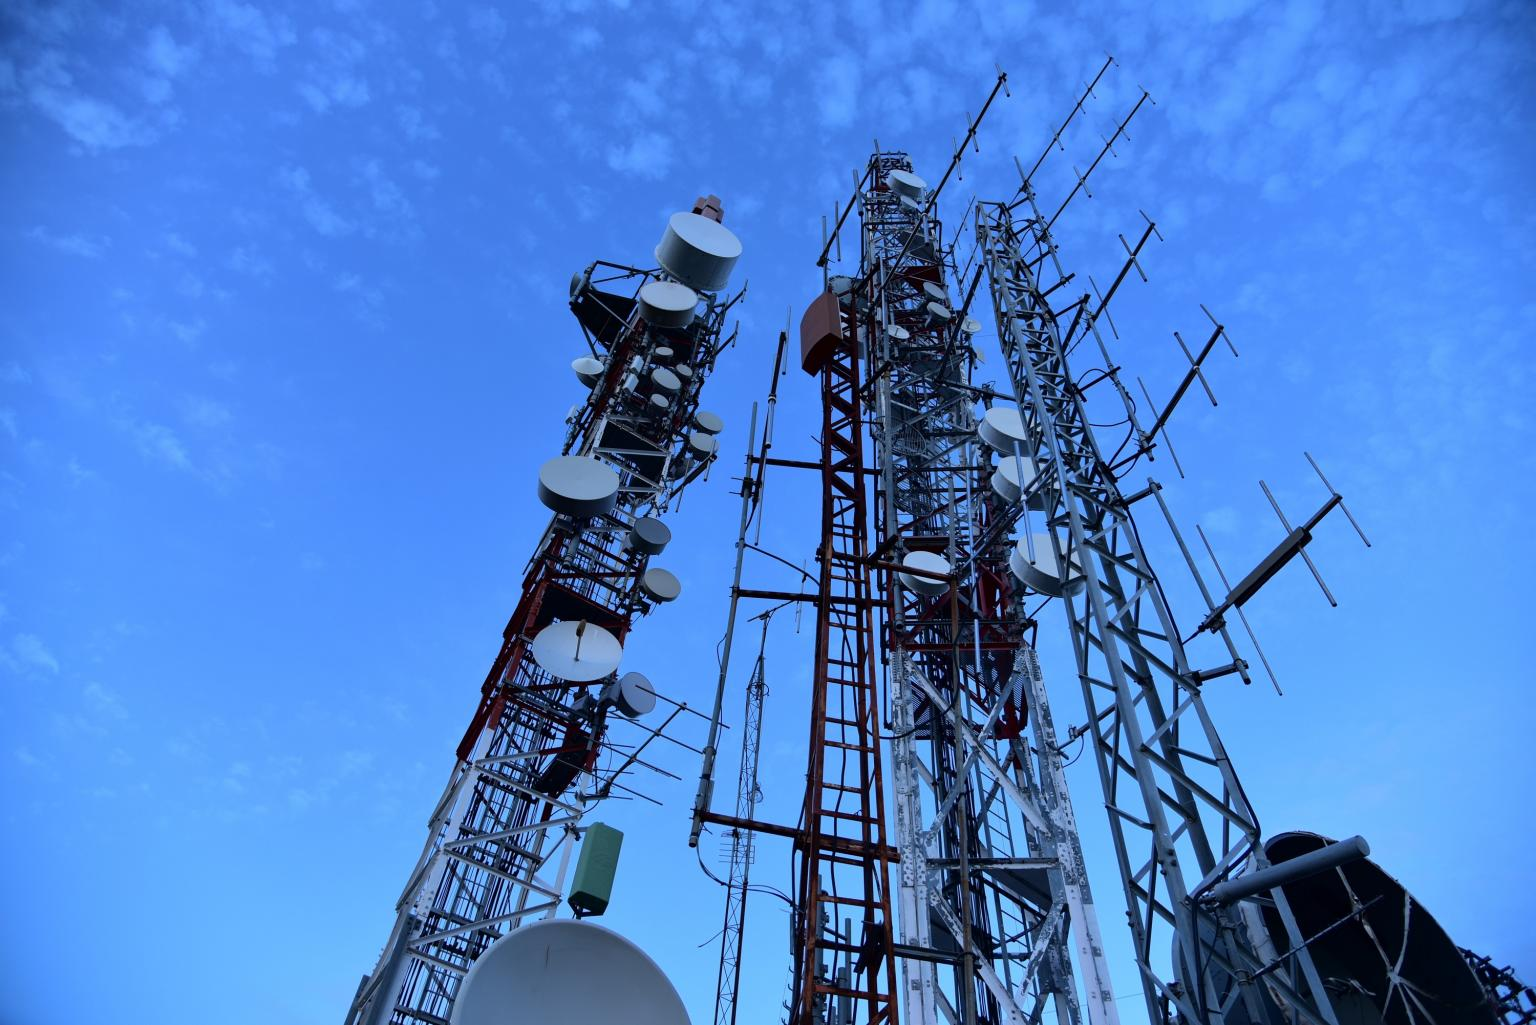 ensuring better and faster signal is crucial for phone networks